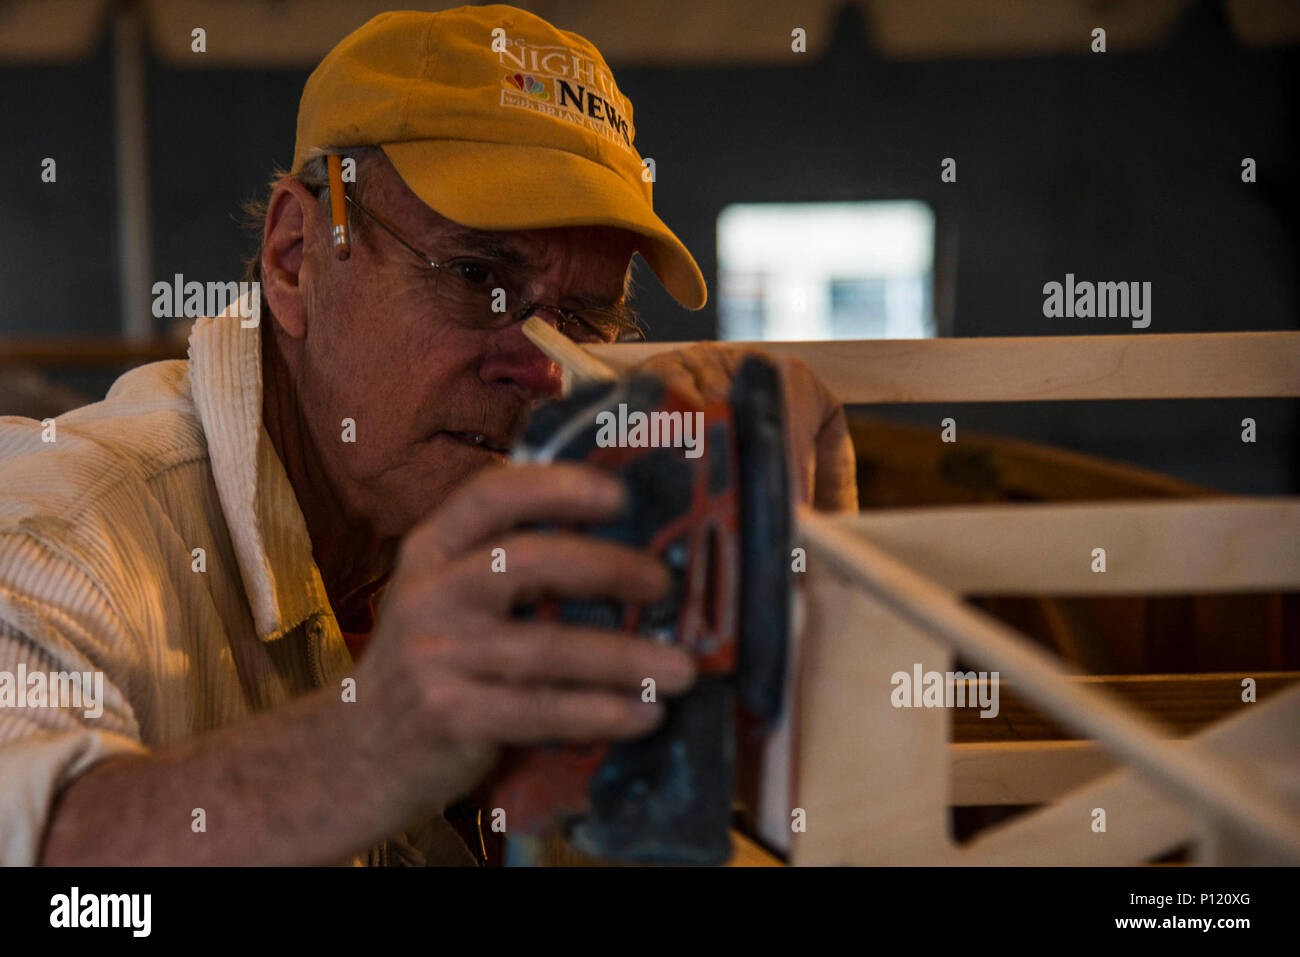 Dorian Walker, Chairman of Friends of Jenny, works on the frame of an aircraft, May, 4, 2017 at Bowling Green, Kentucky. The Curtiss JN-4 is possibly North America's most famous World War I aircraft. It was a twin-seat, student in front of instructor, dual-control biplane. Its tractor propeller and maneuverability made it ideal for initial pilot training. It was widely used during World War I to train begining pilots, with an estimated 95% of all trainees having flown a JN-4. Stock Photo